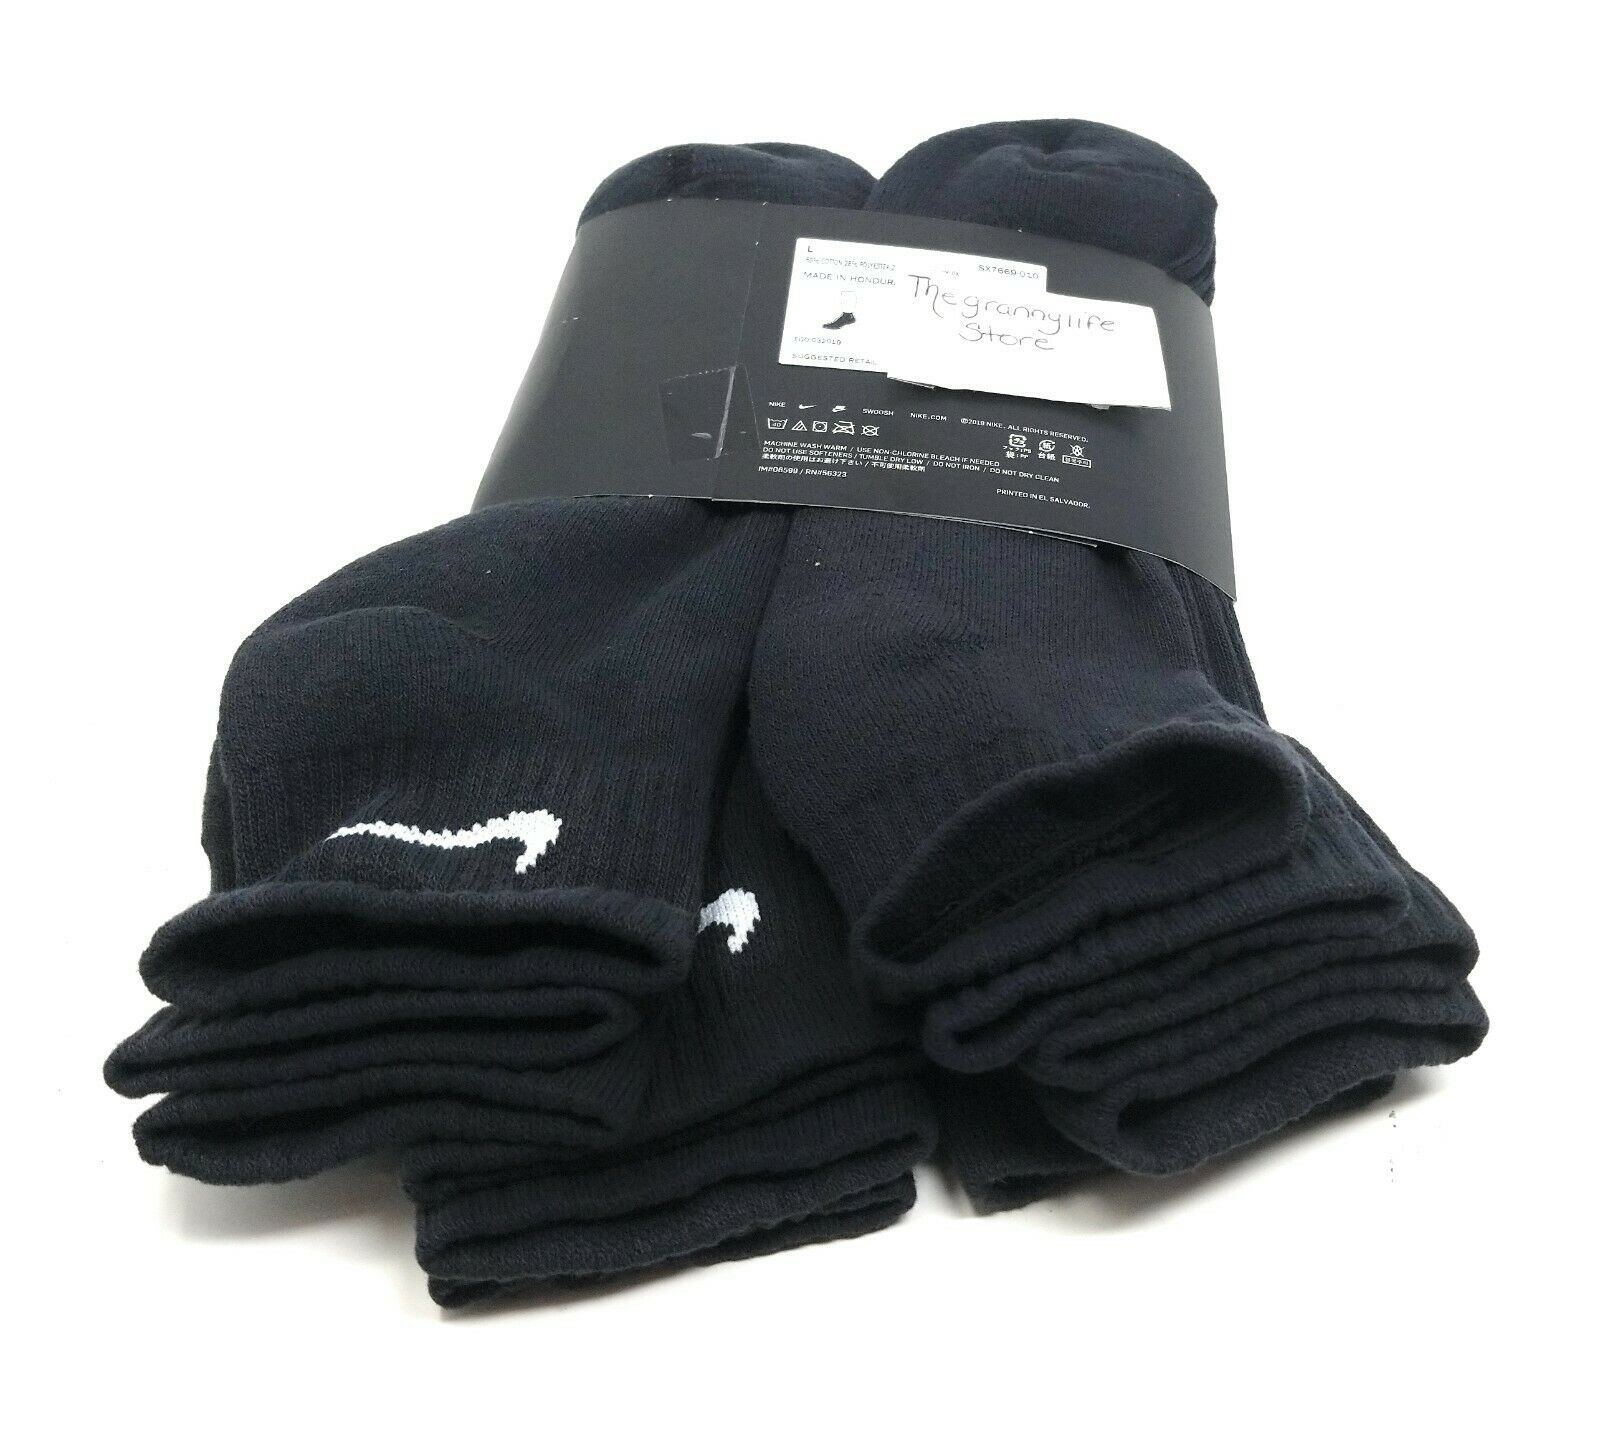 Mens Ankle Nike Socks L Black Women Quarter 6 Pairs Cotton Cushion Training image 5